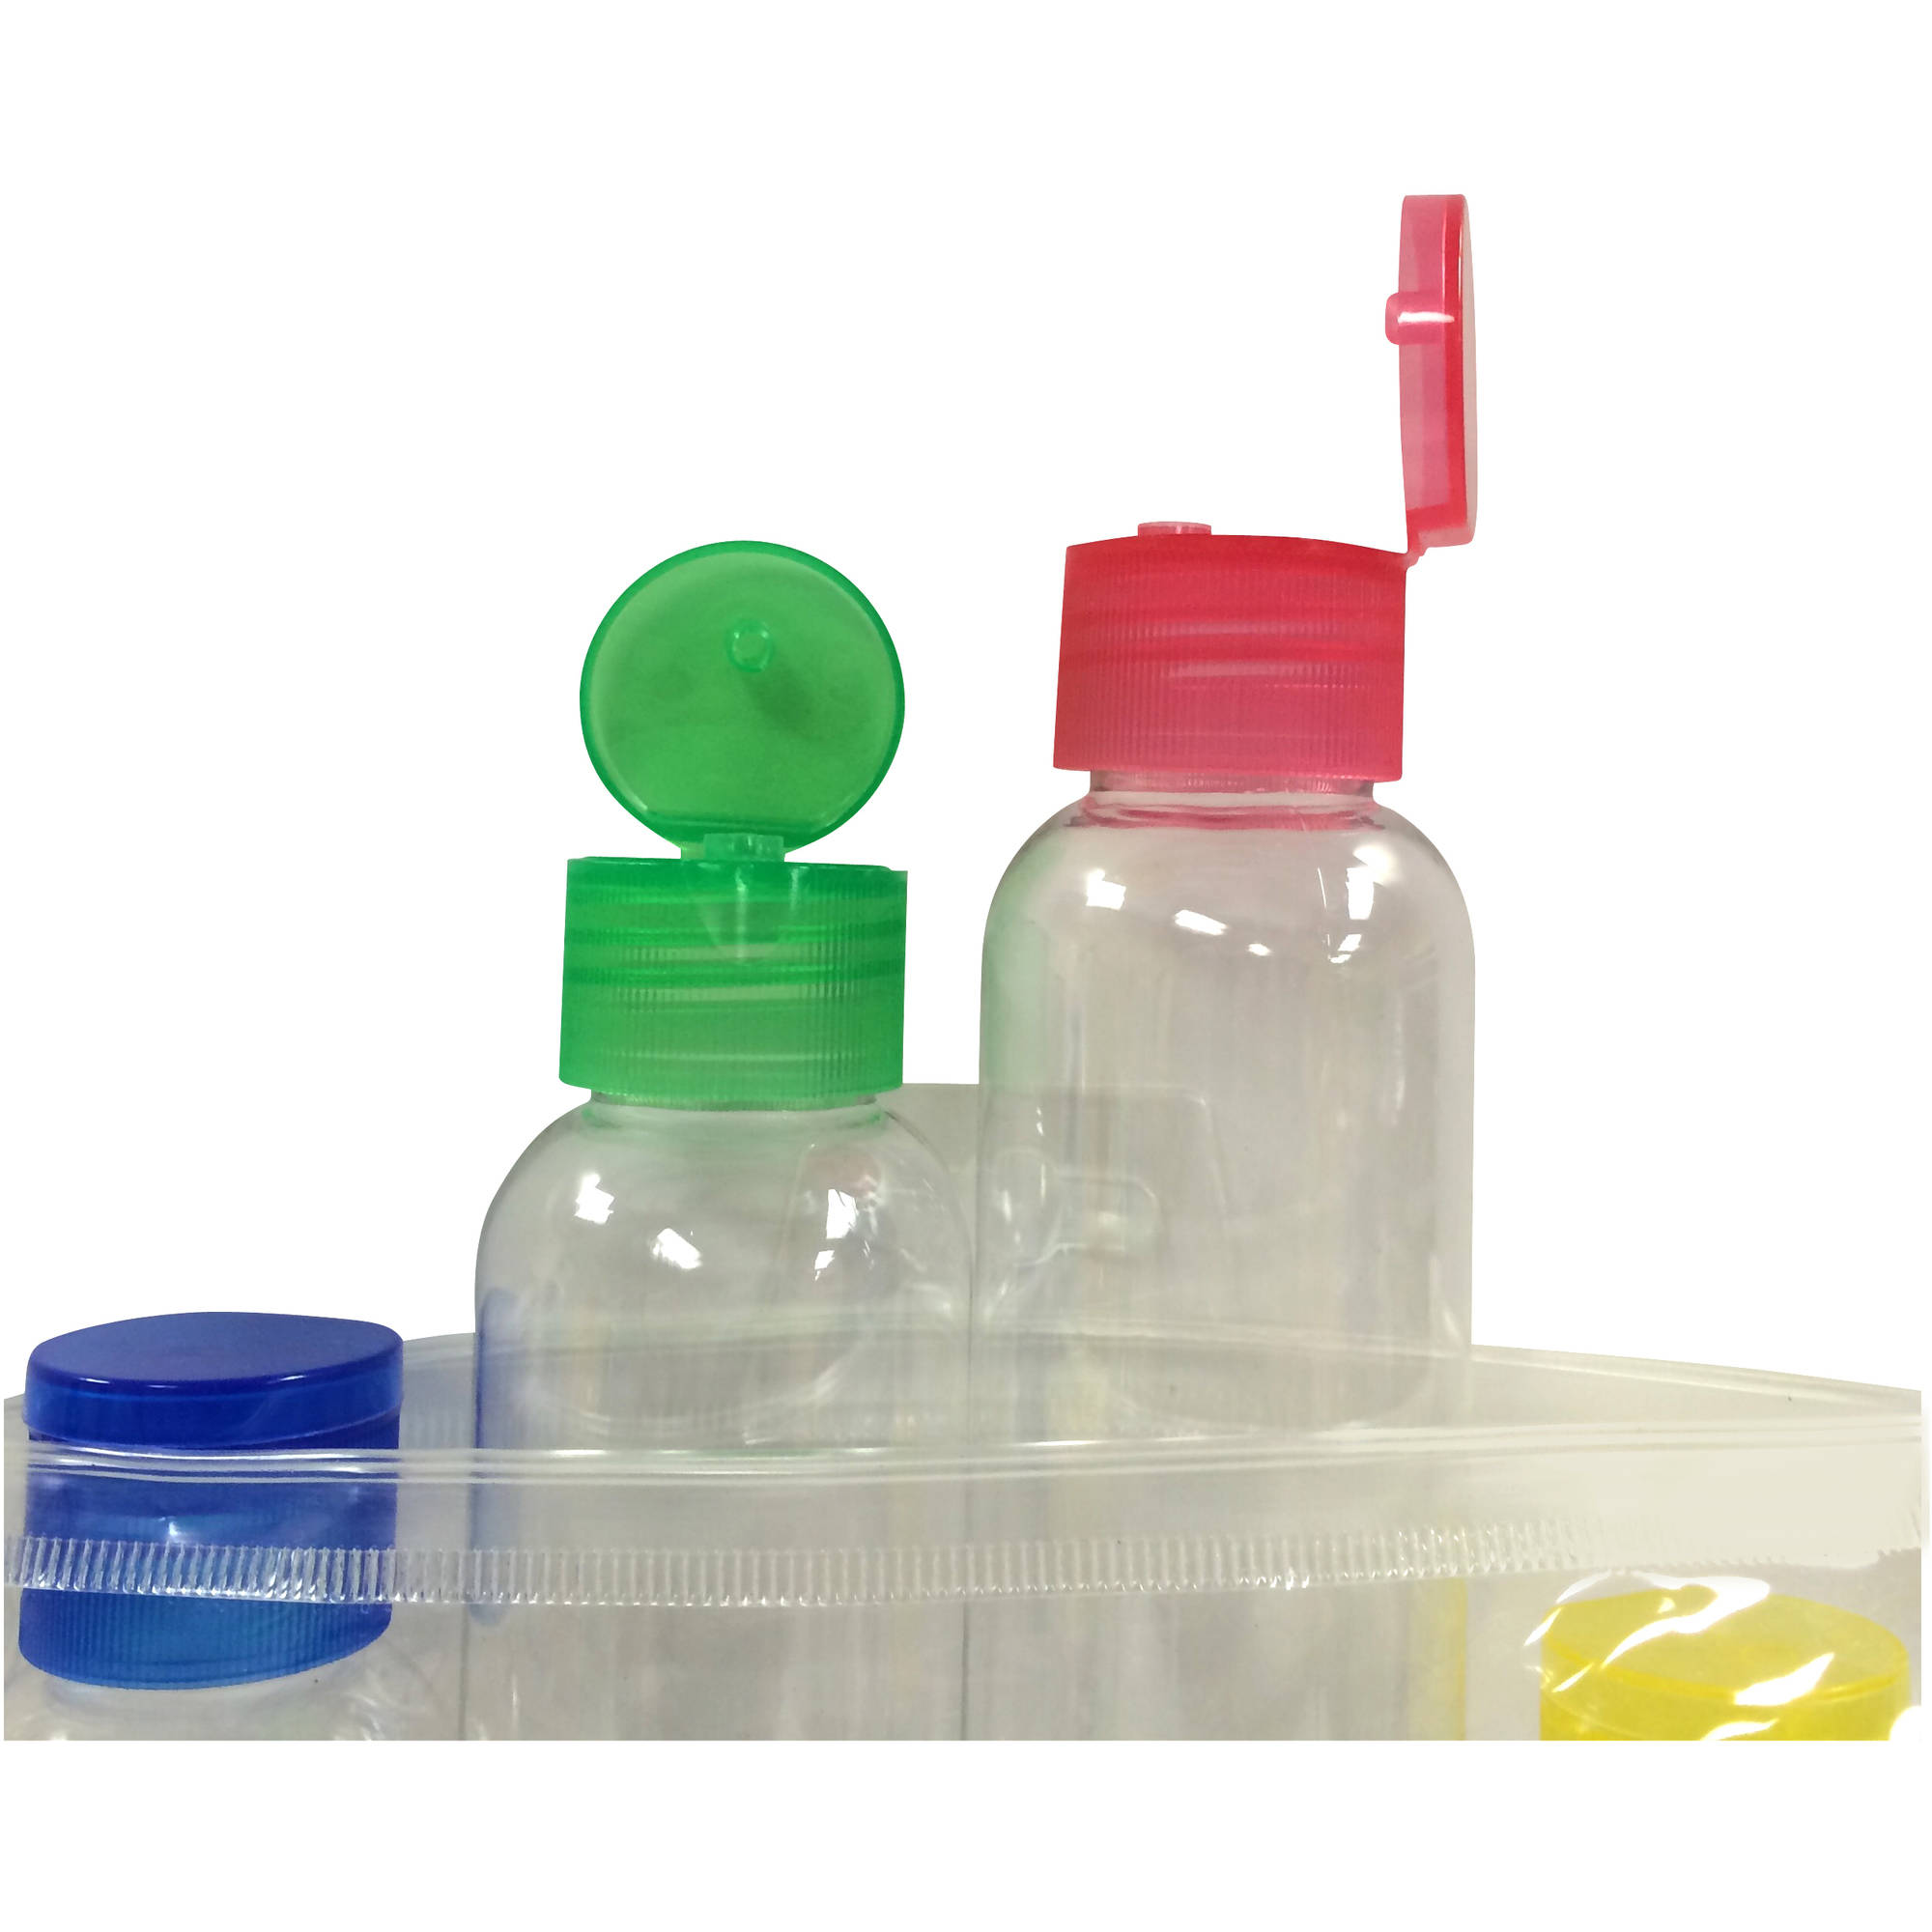 iGo Grab-N-Go Travel Bottles, 3 oz, 4 ct